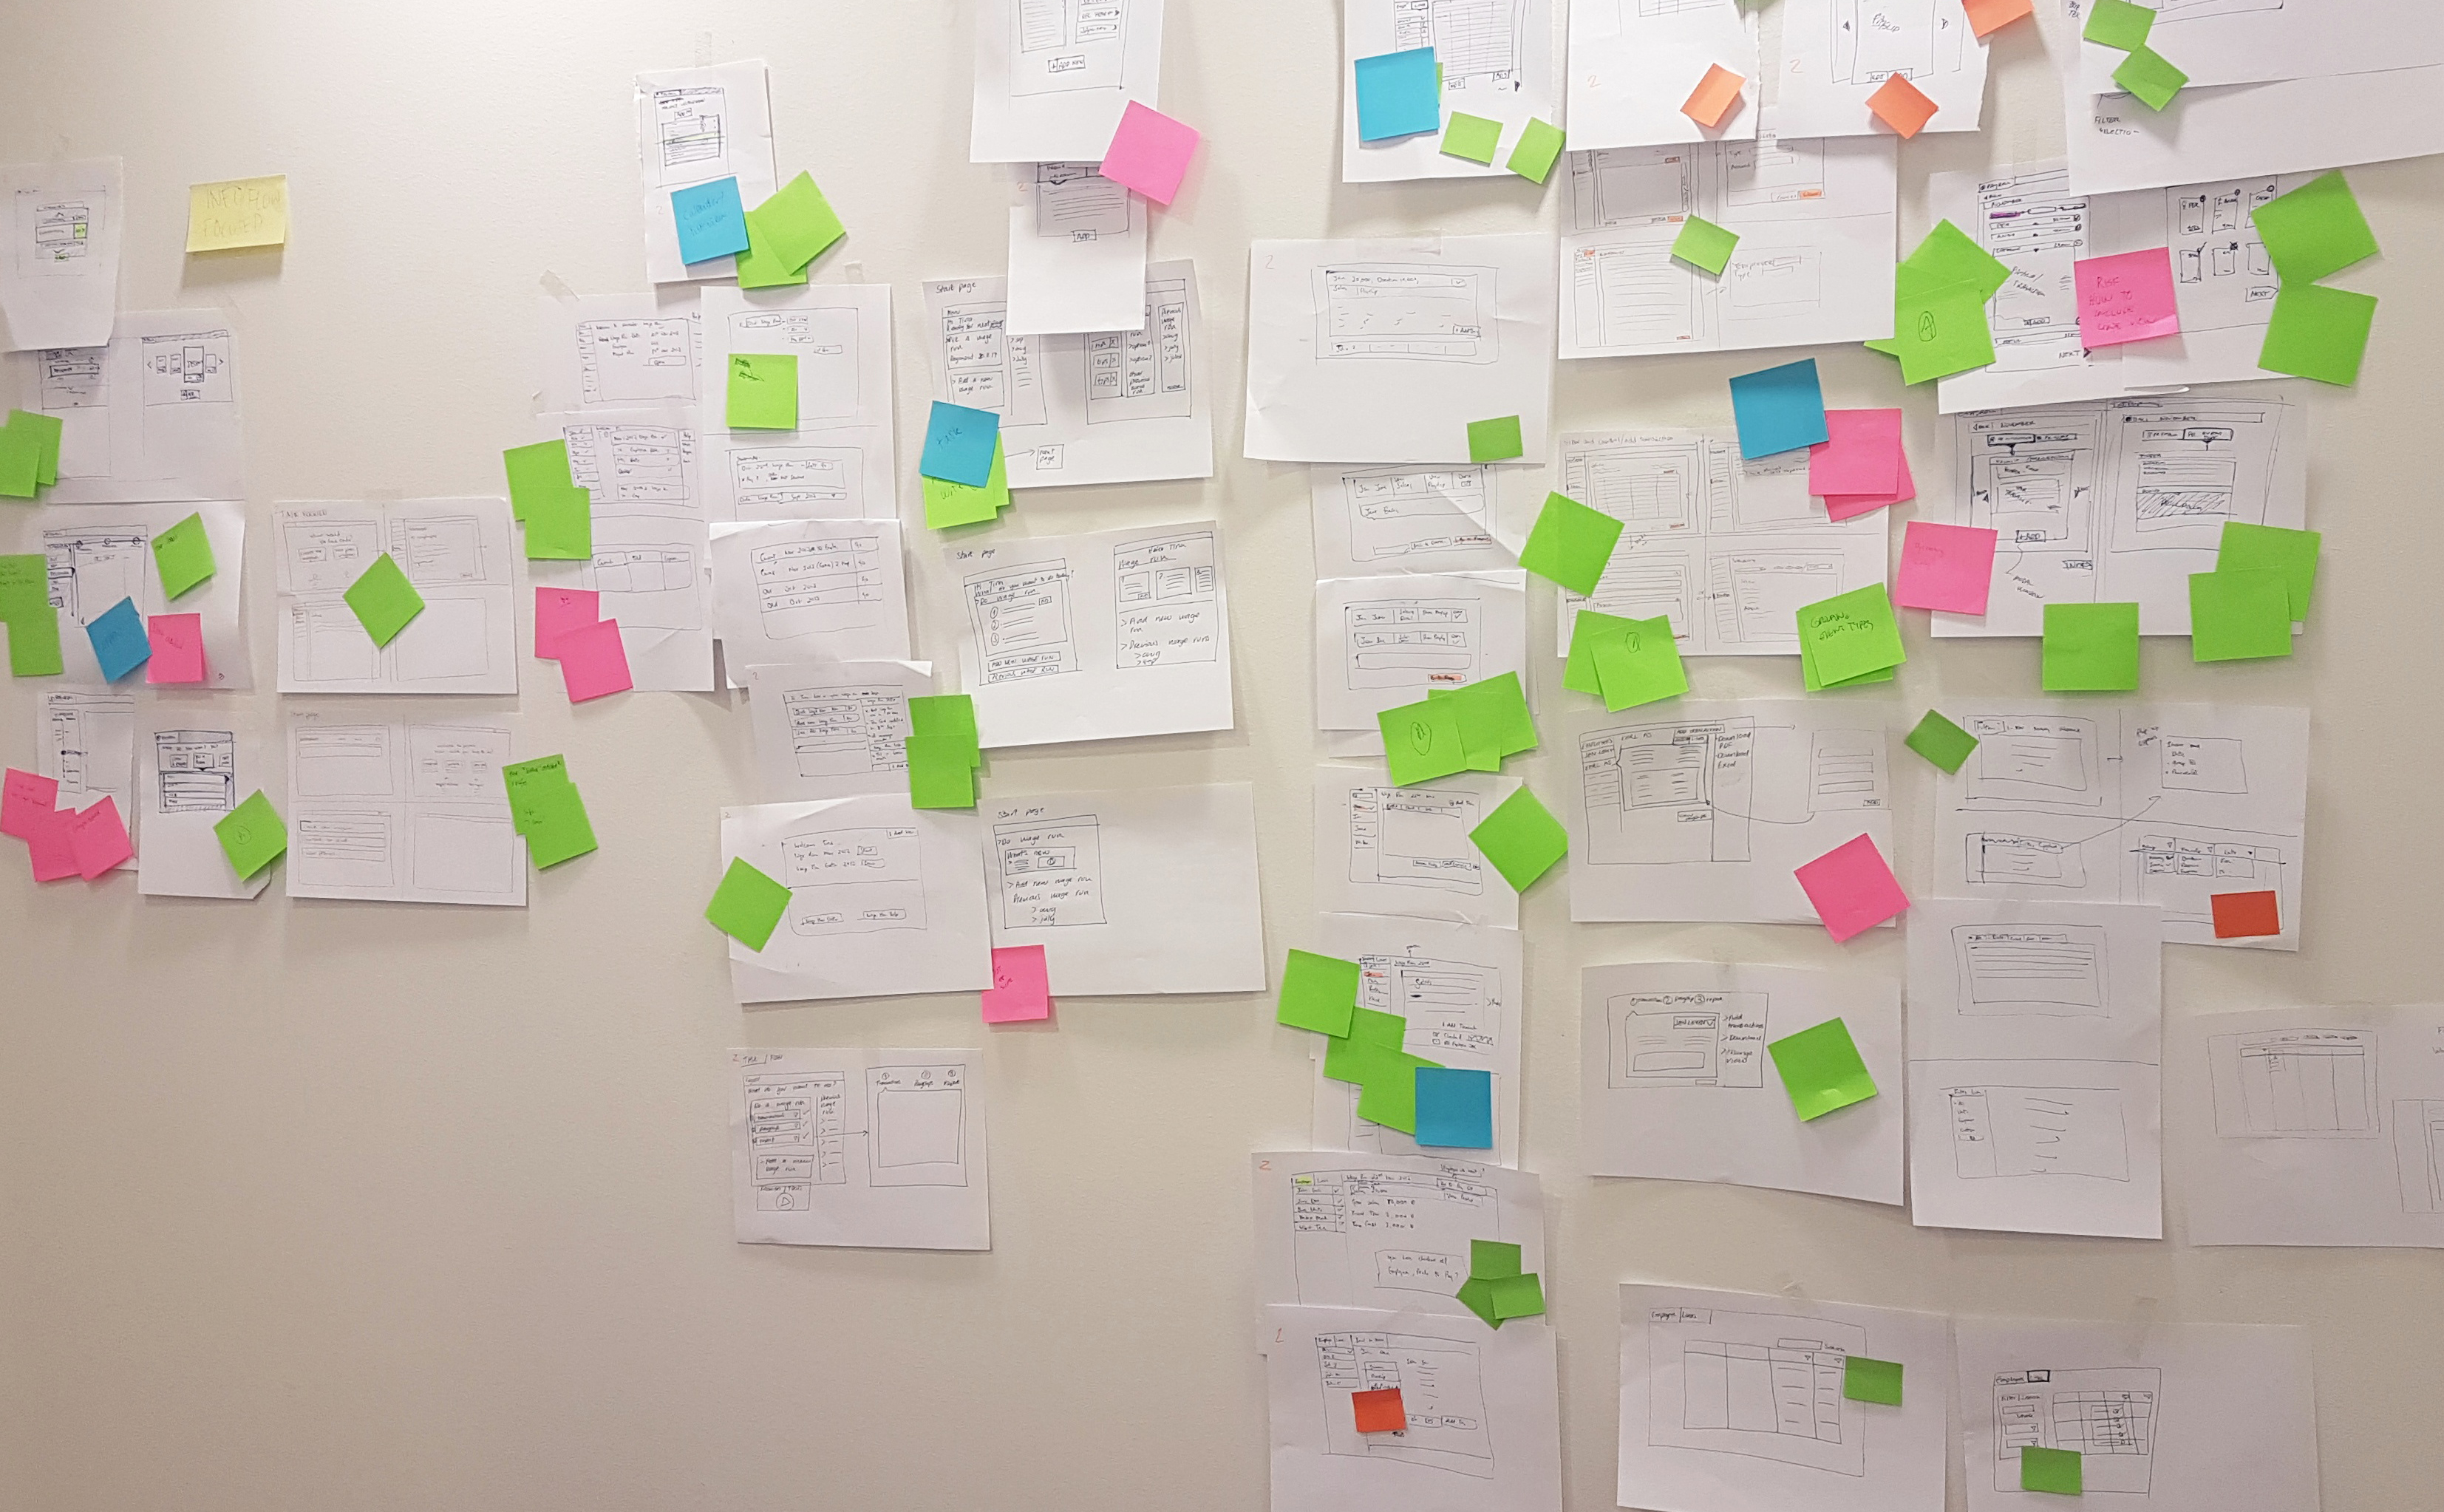 A wall used for pitching and critiquing ideas during one of my physical design studios